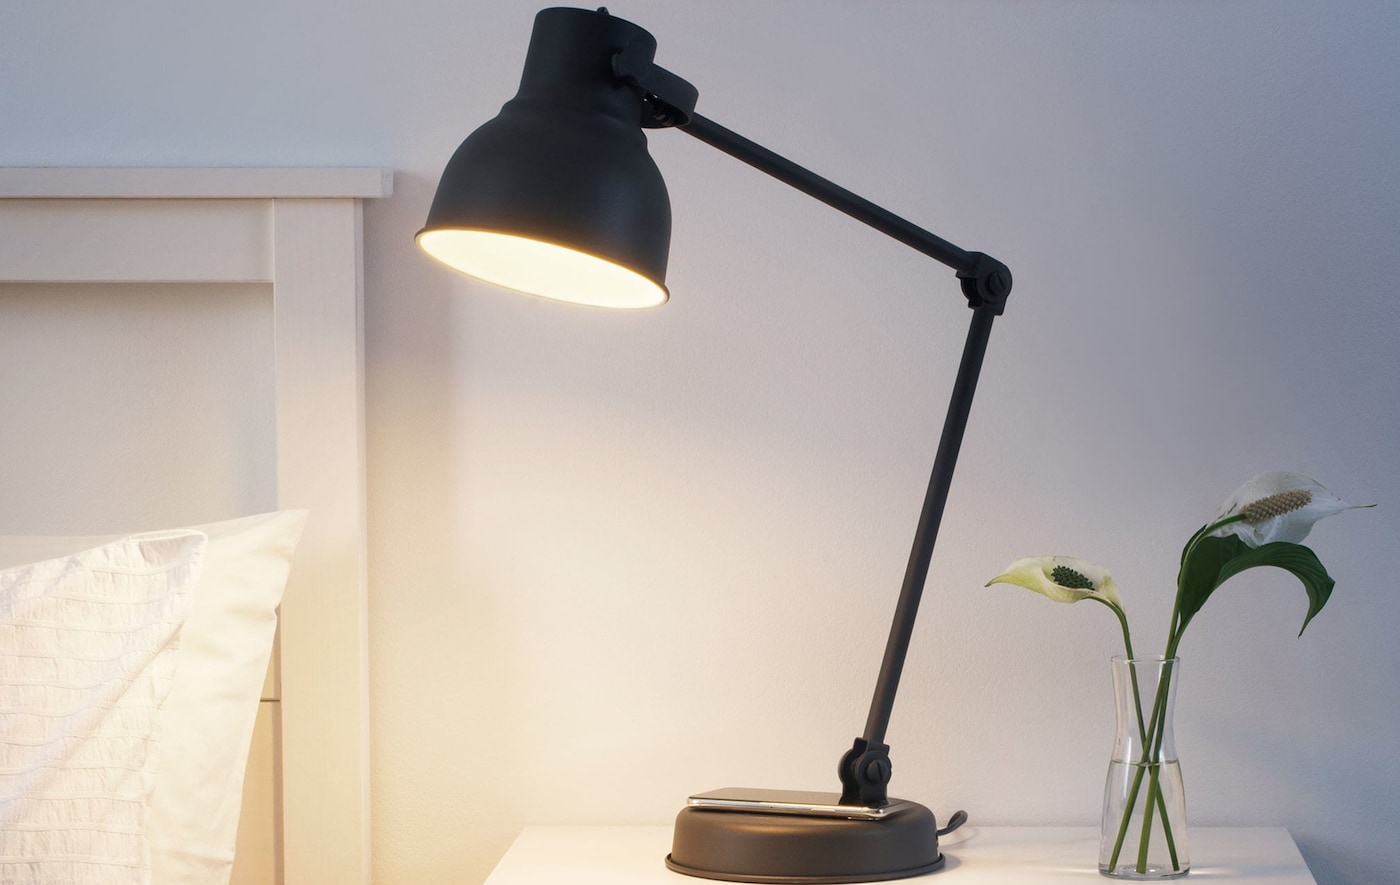 A black table lamp on a bedside table.